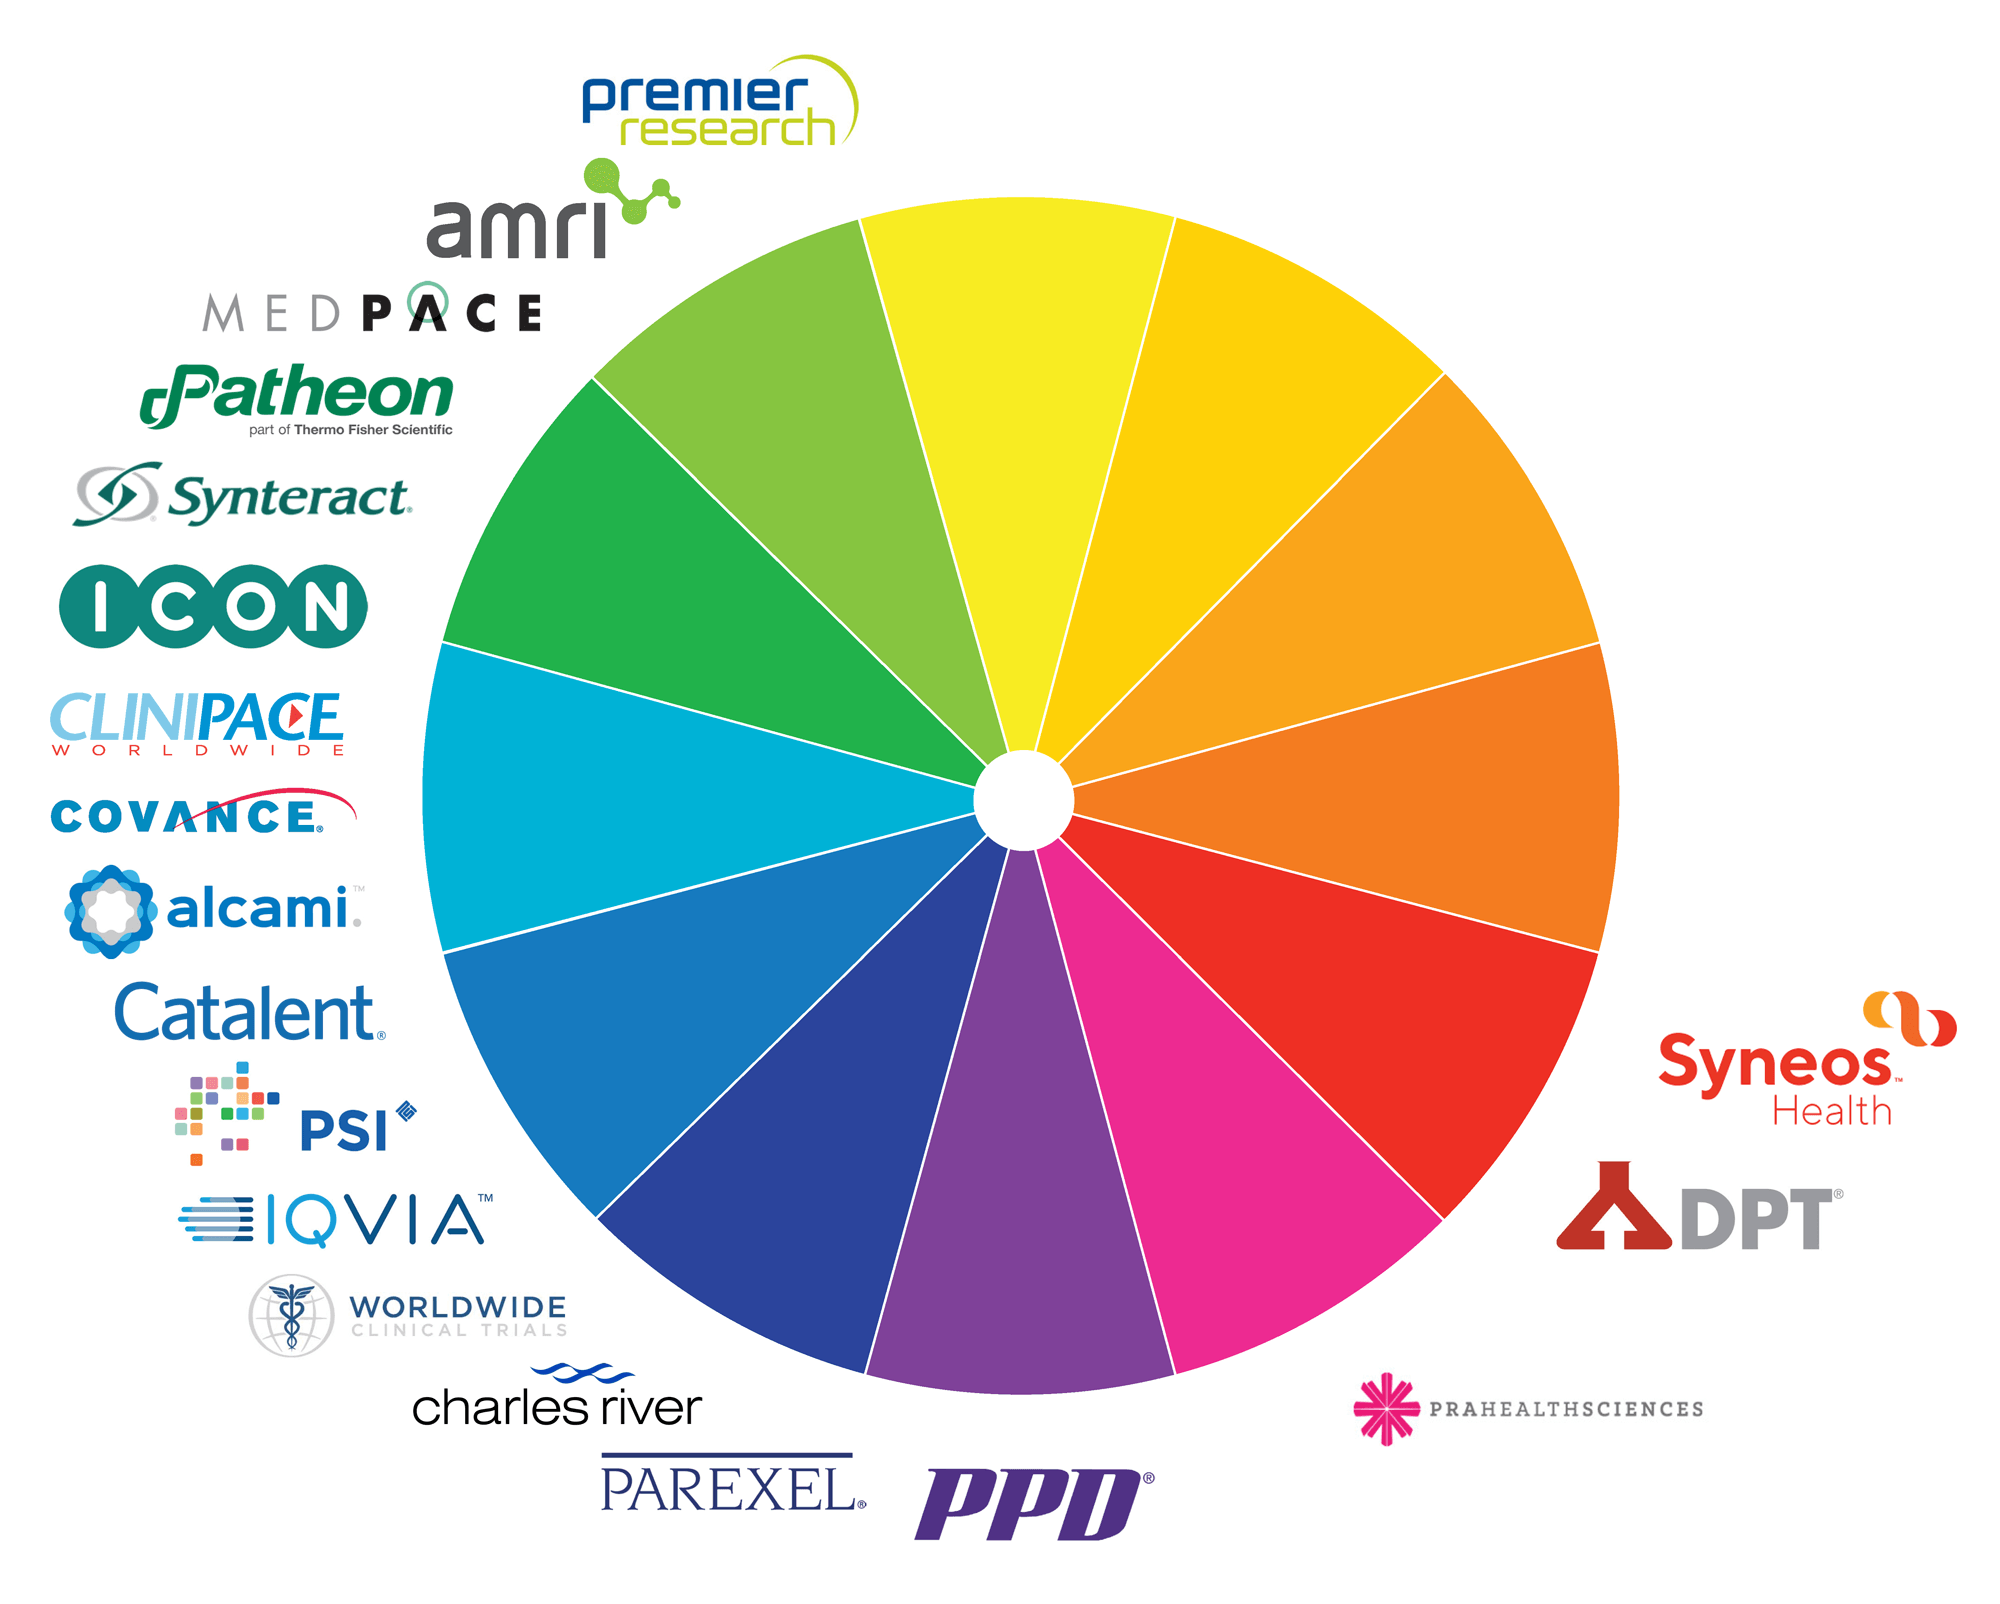 Logos from the health science industry on a color wheel.